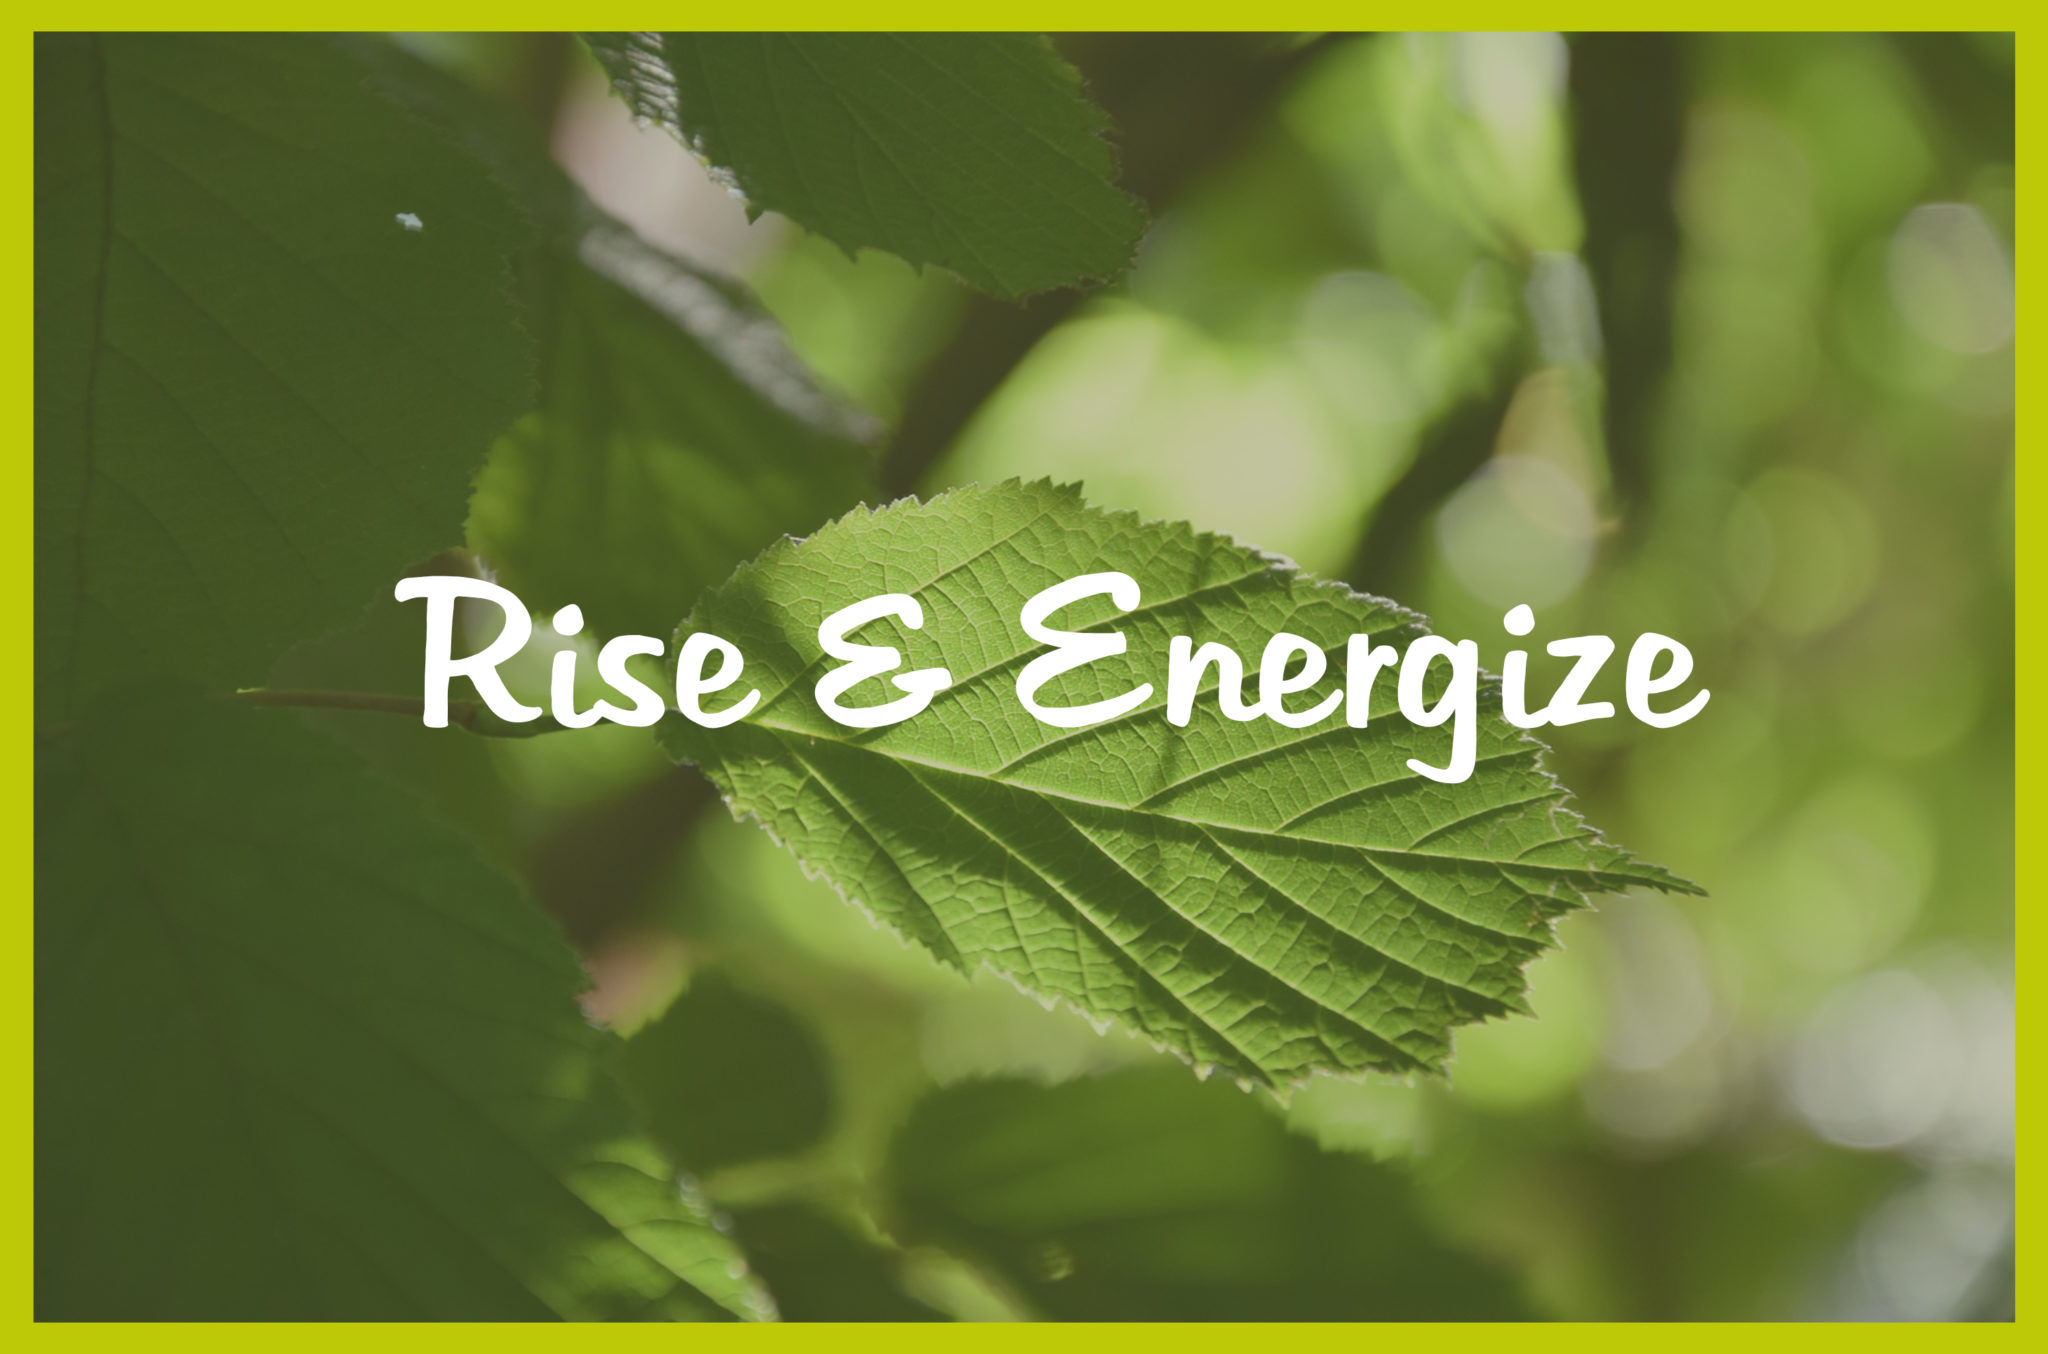 rise and energize border